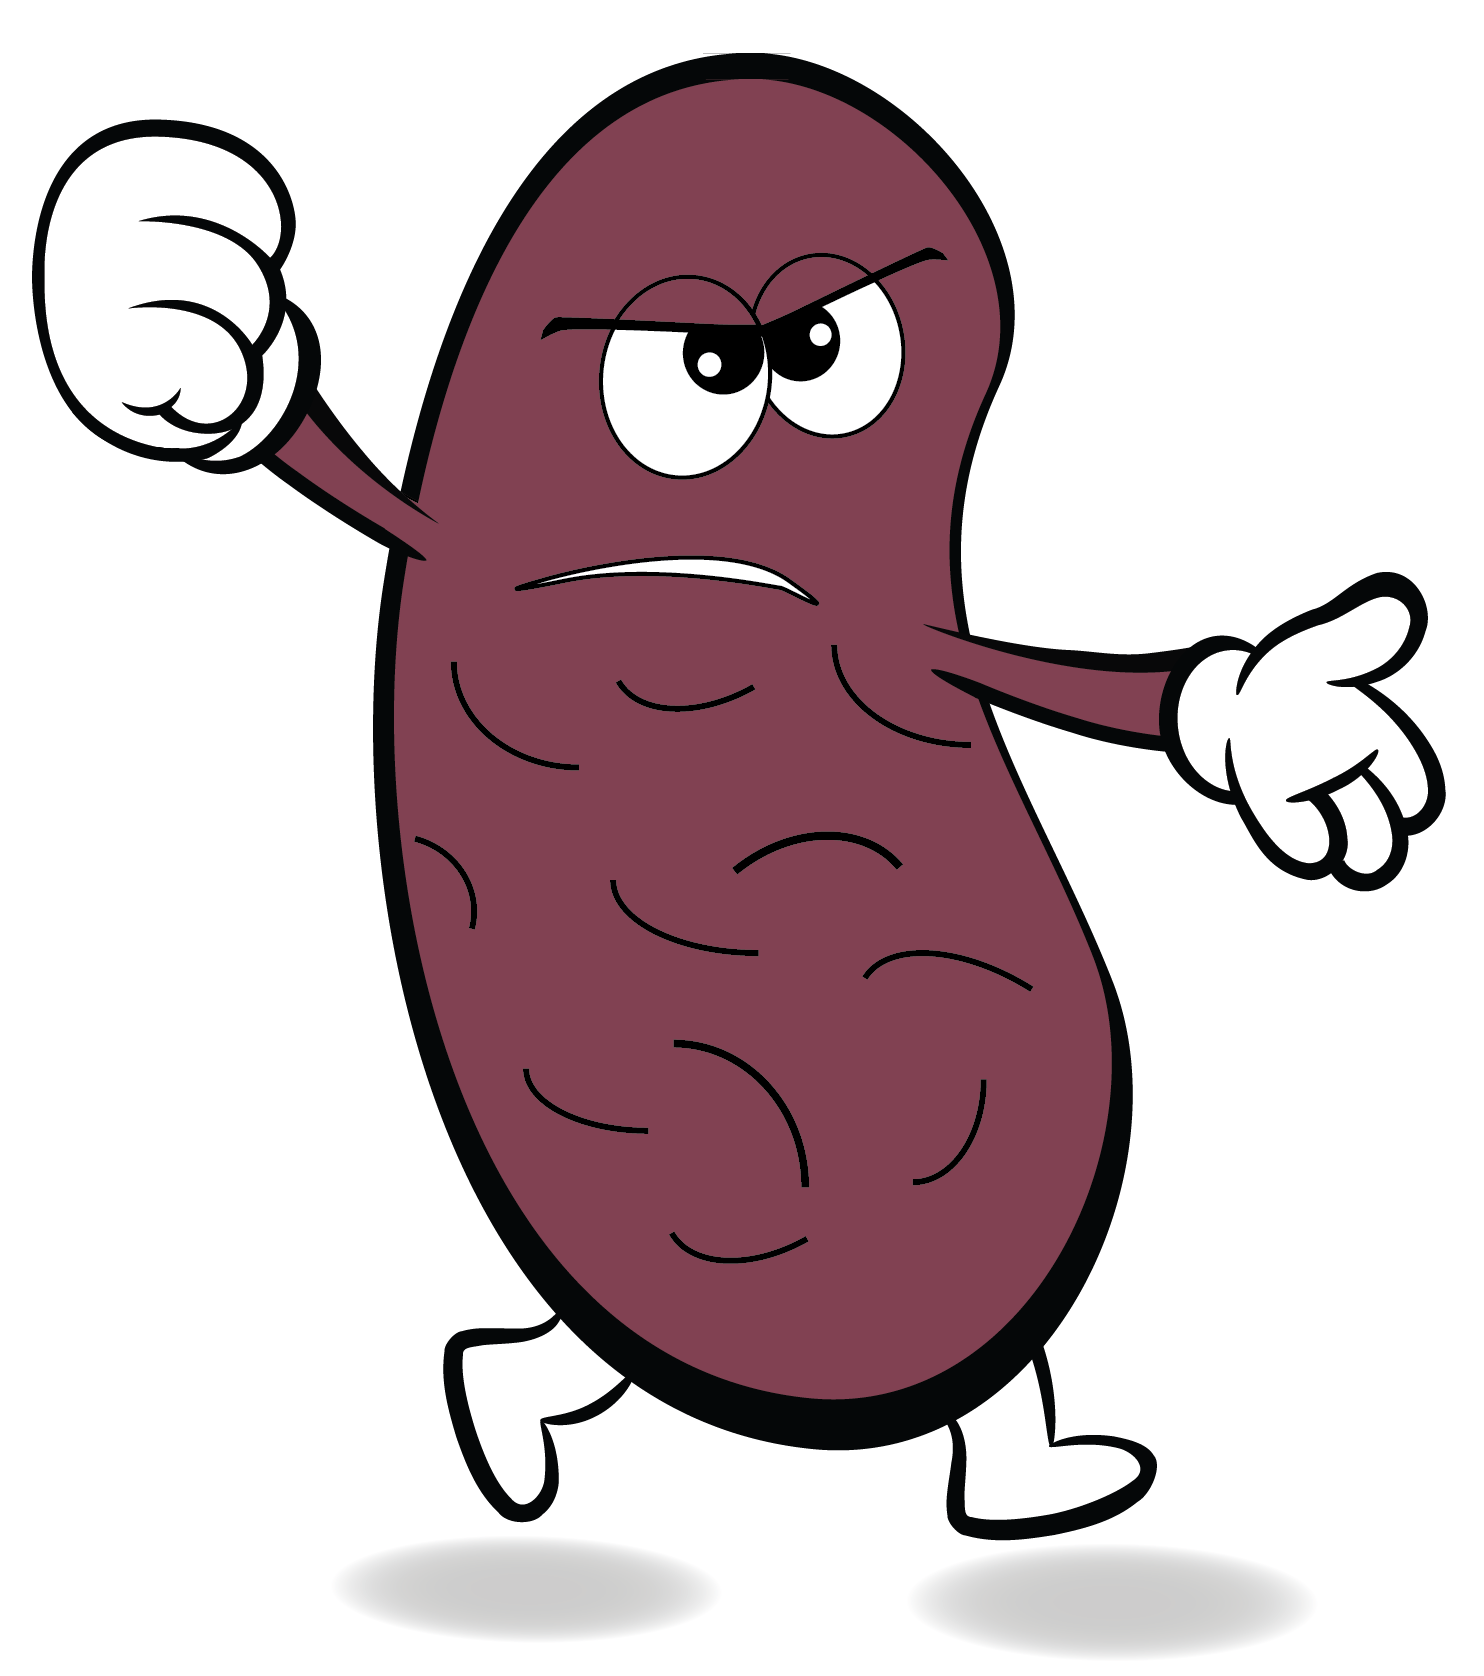 Kidney bean hanslodge cliparts. Beans clipart character